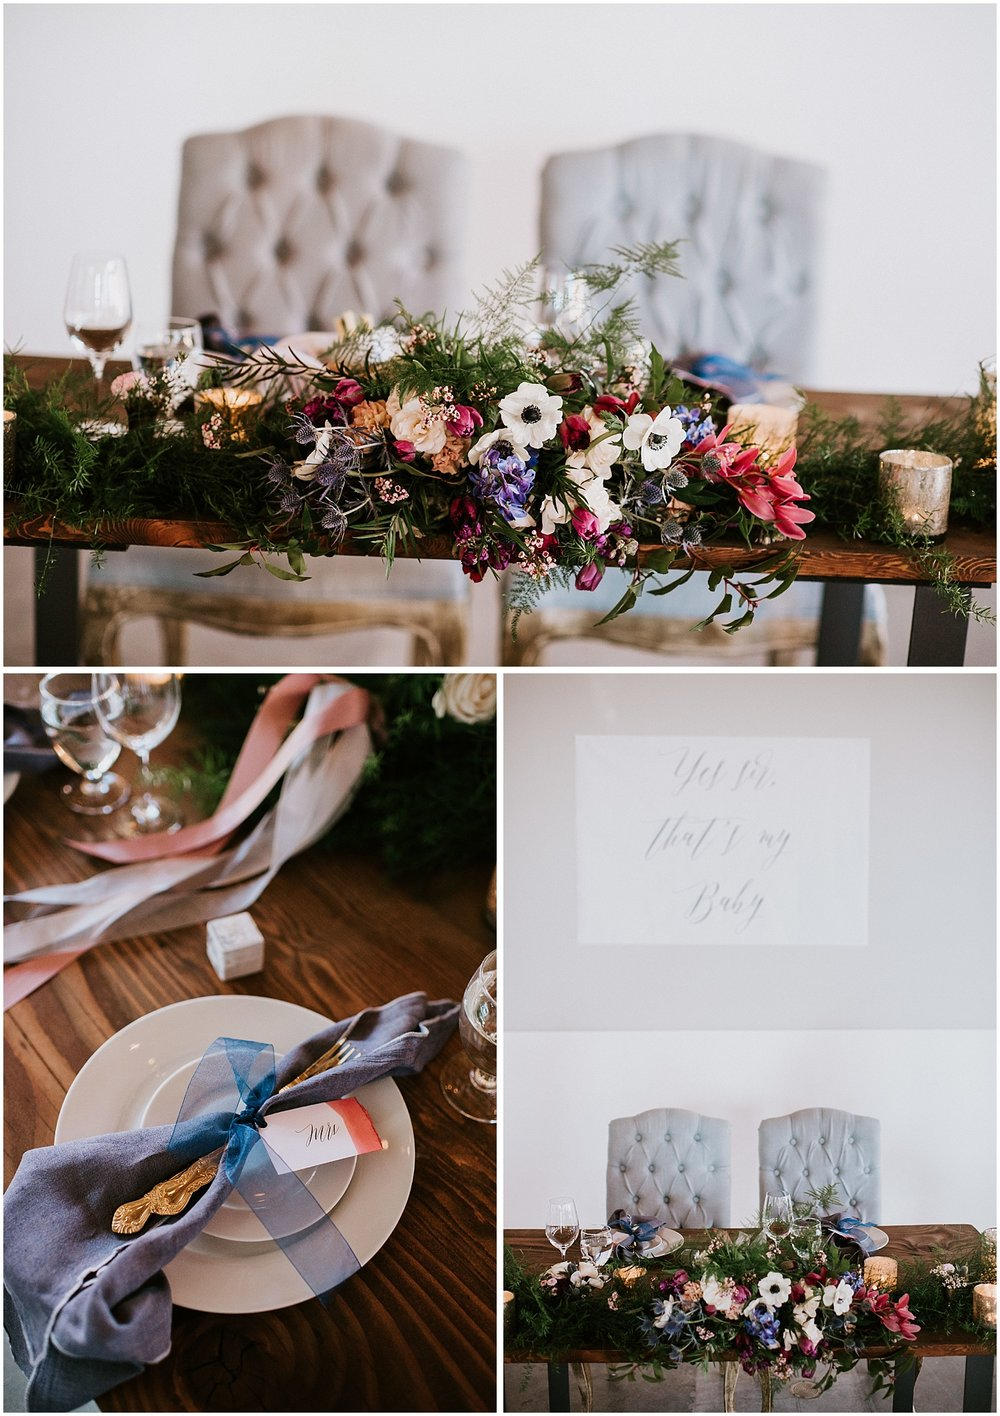 north vancouver intimate wedding decor pipe shop venue table for two place setting greenery diy wedding by stacie carr photography sweetheart table